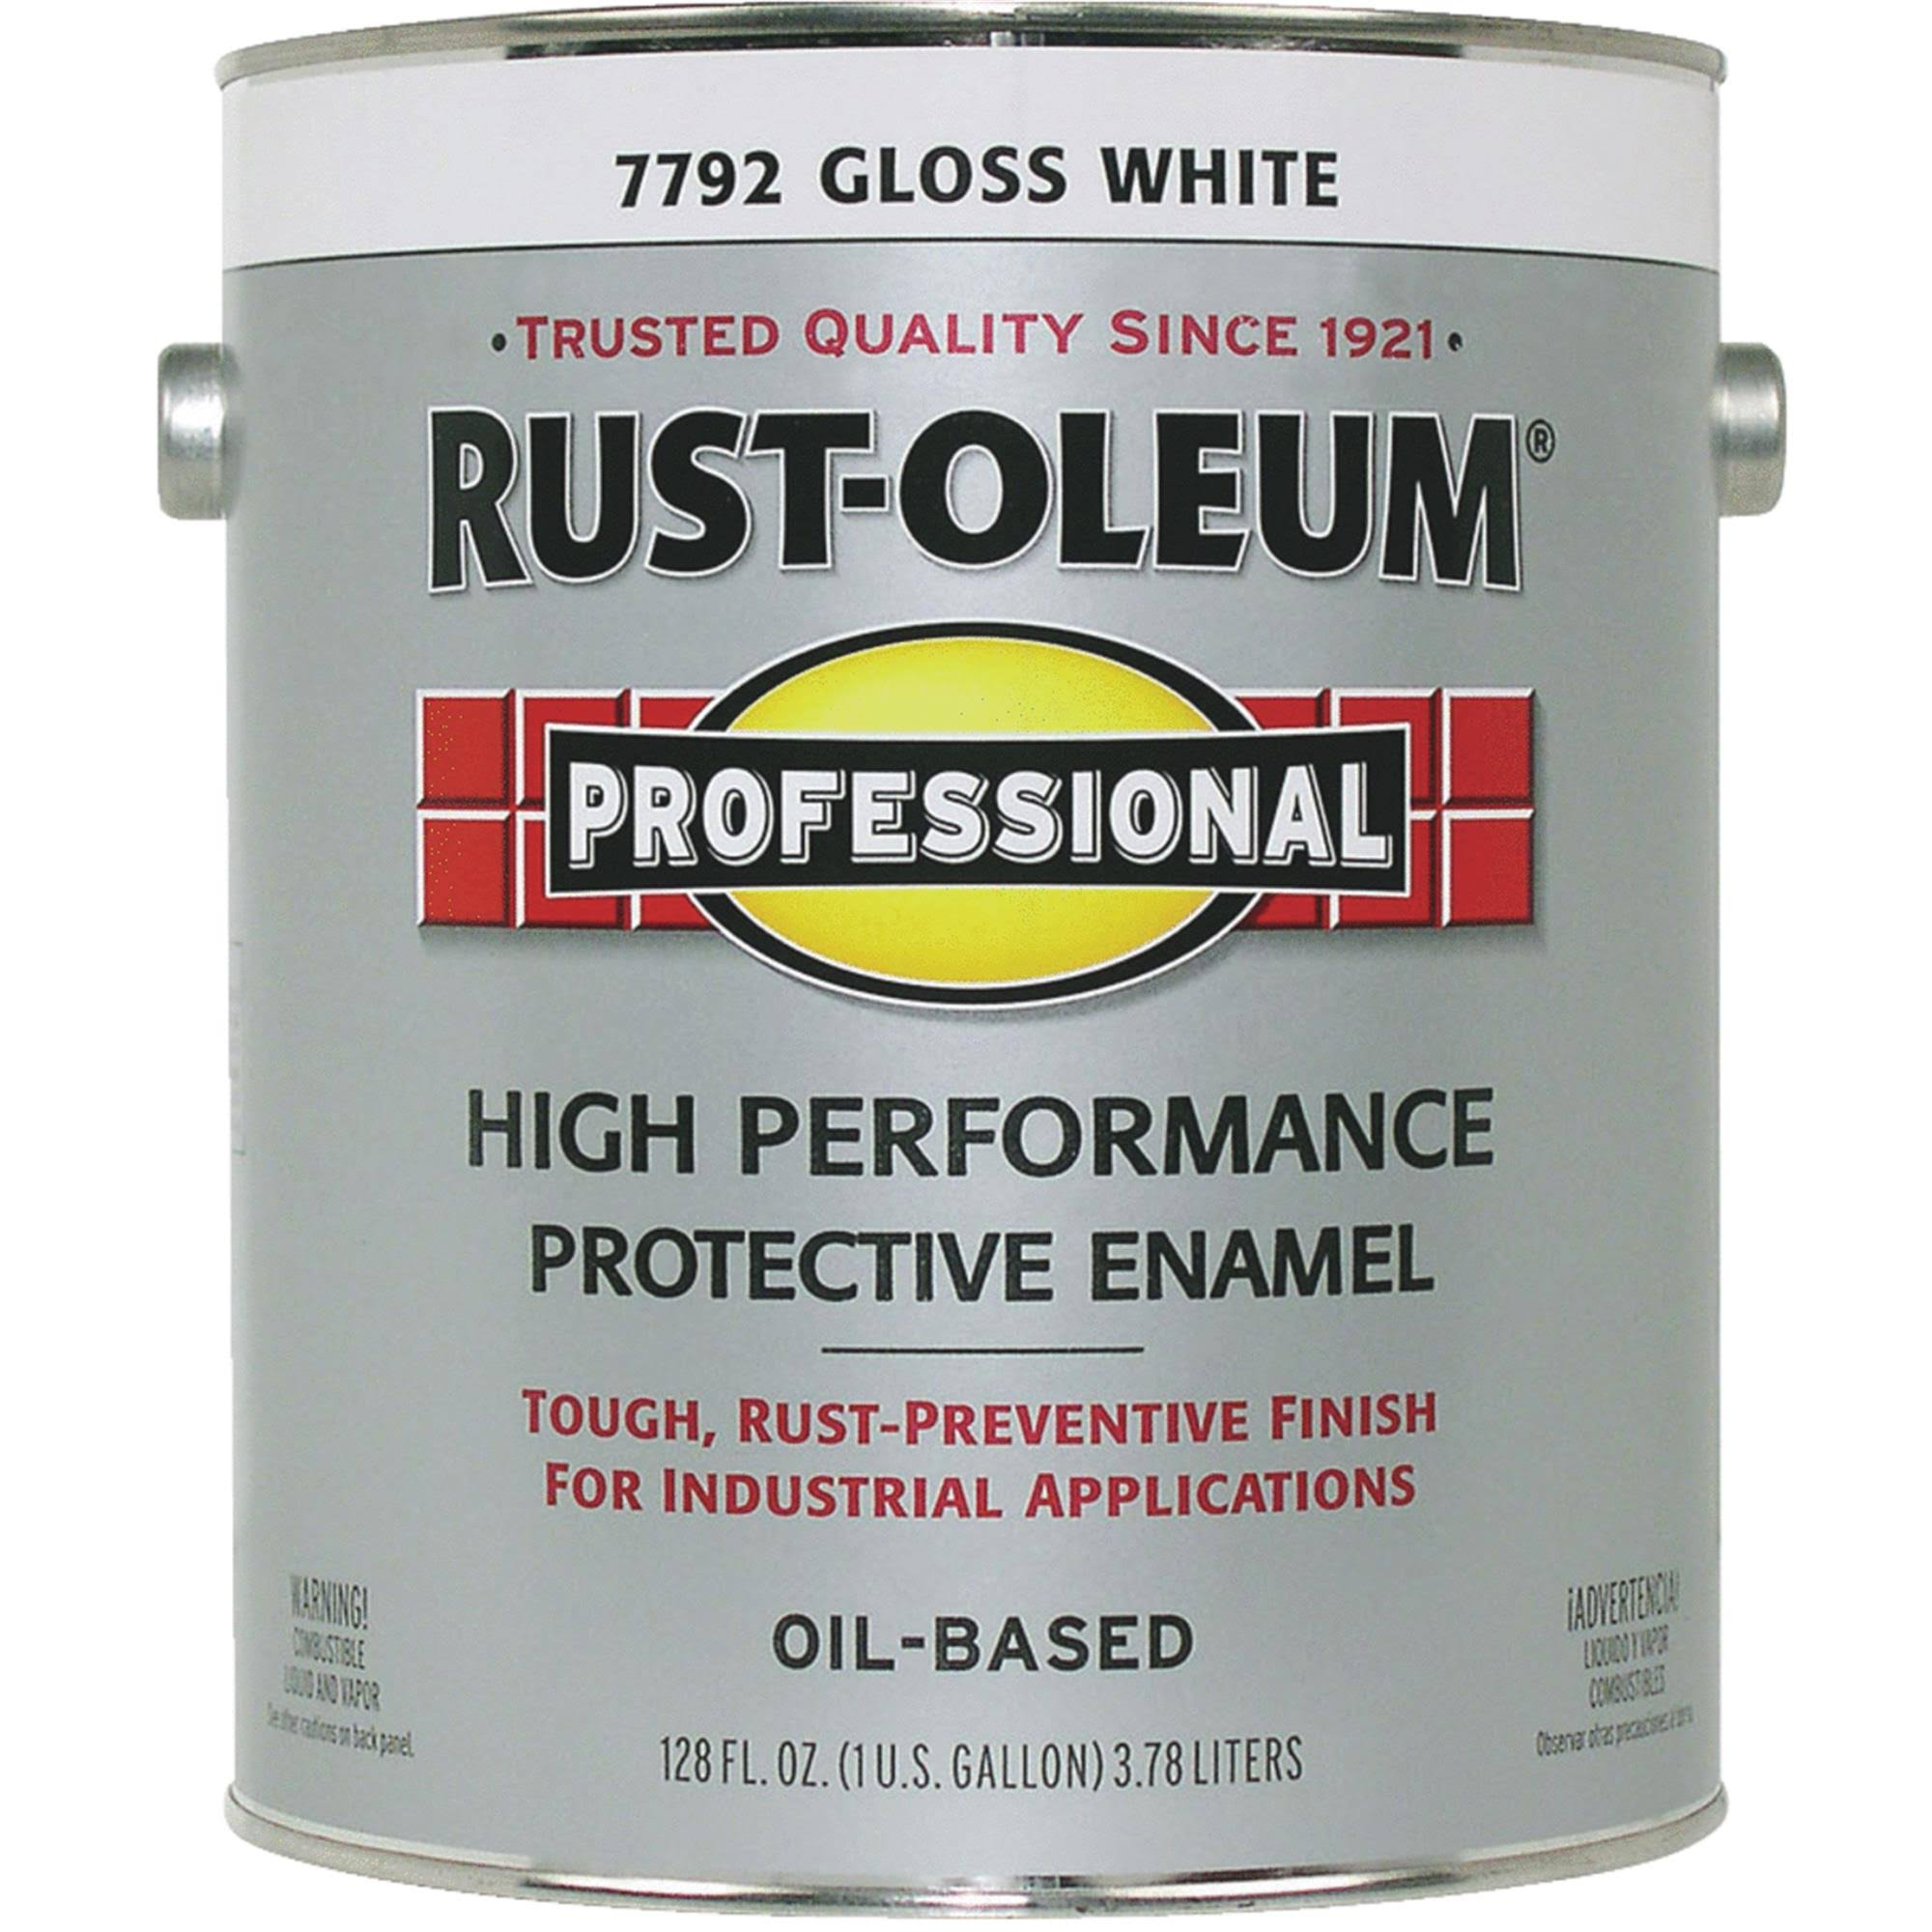 Rust-Oleum 7792-402 Professional Protective Enamel - 1gal, Gloss White